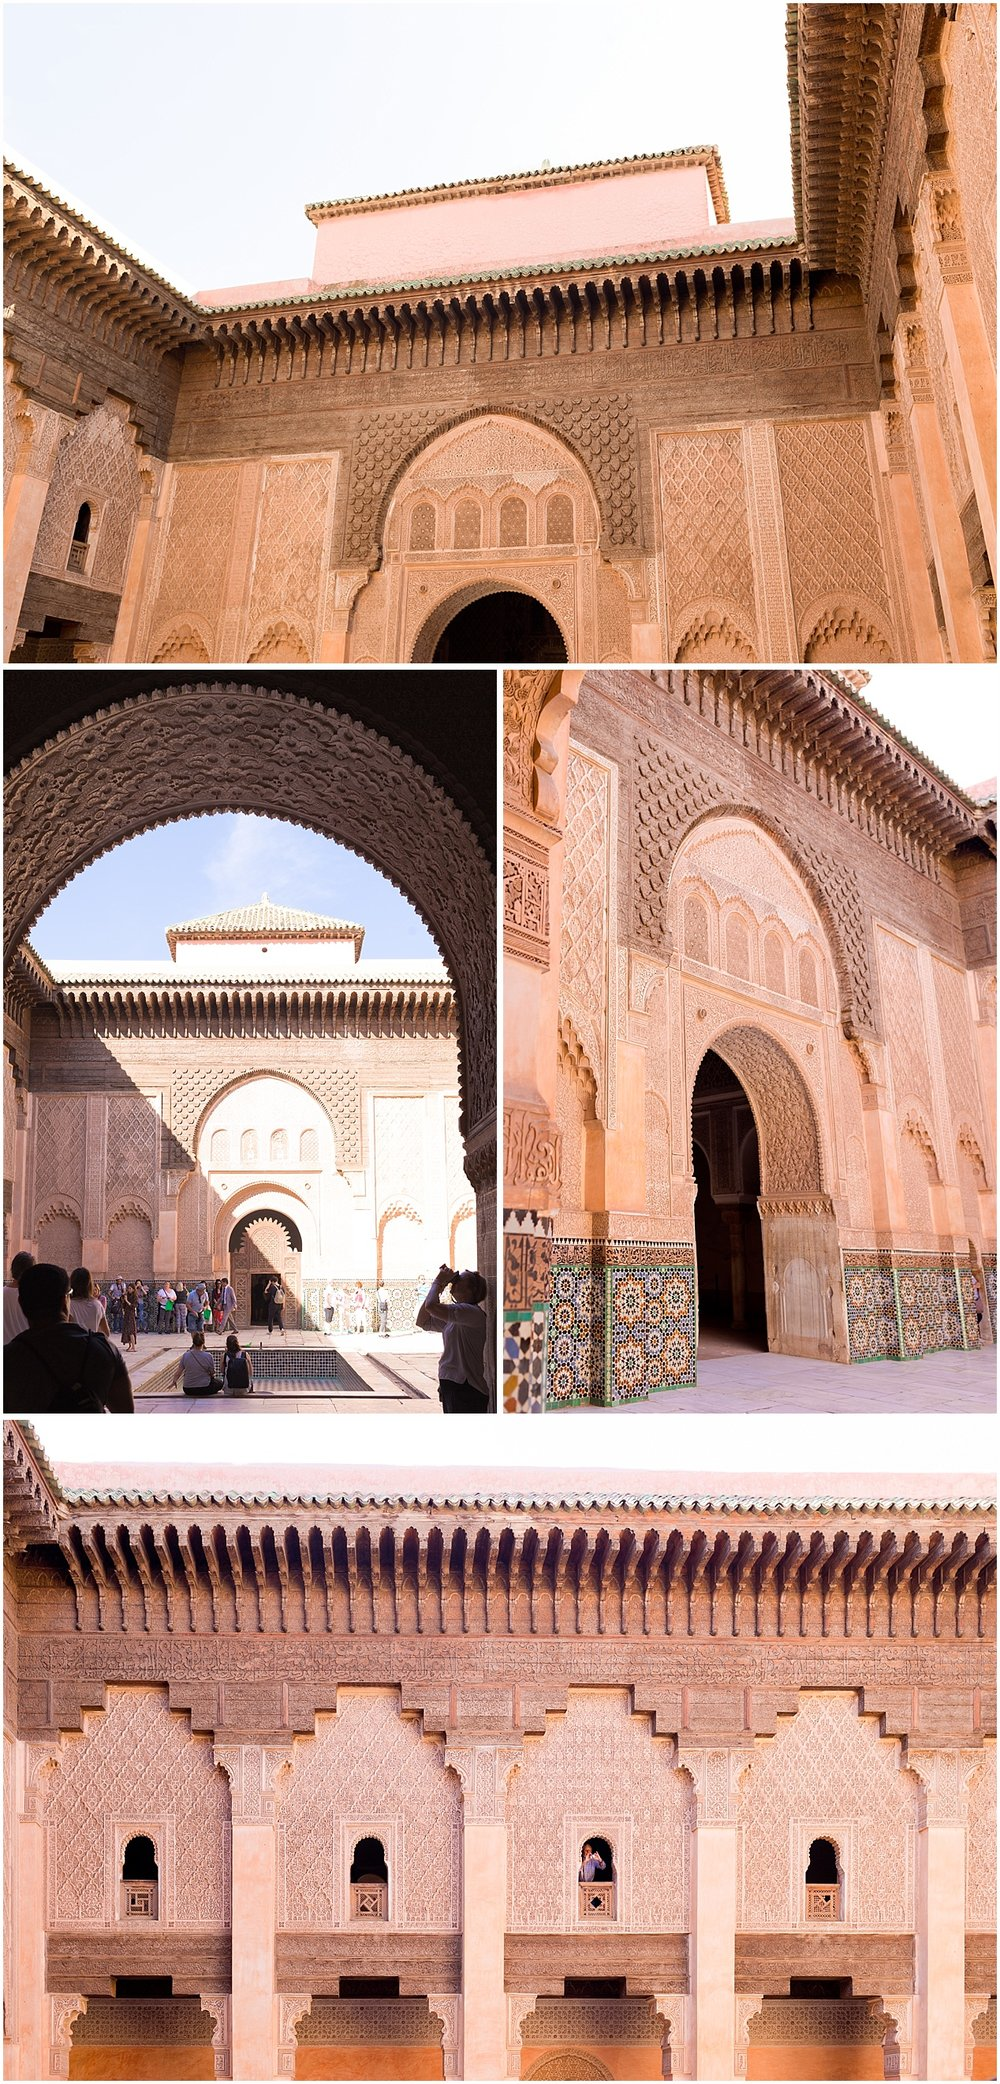 exterior of Medersa Ben Youssef in Marrackech, Morocco